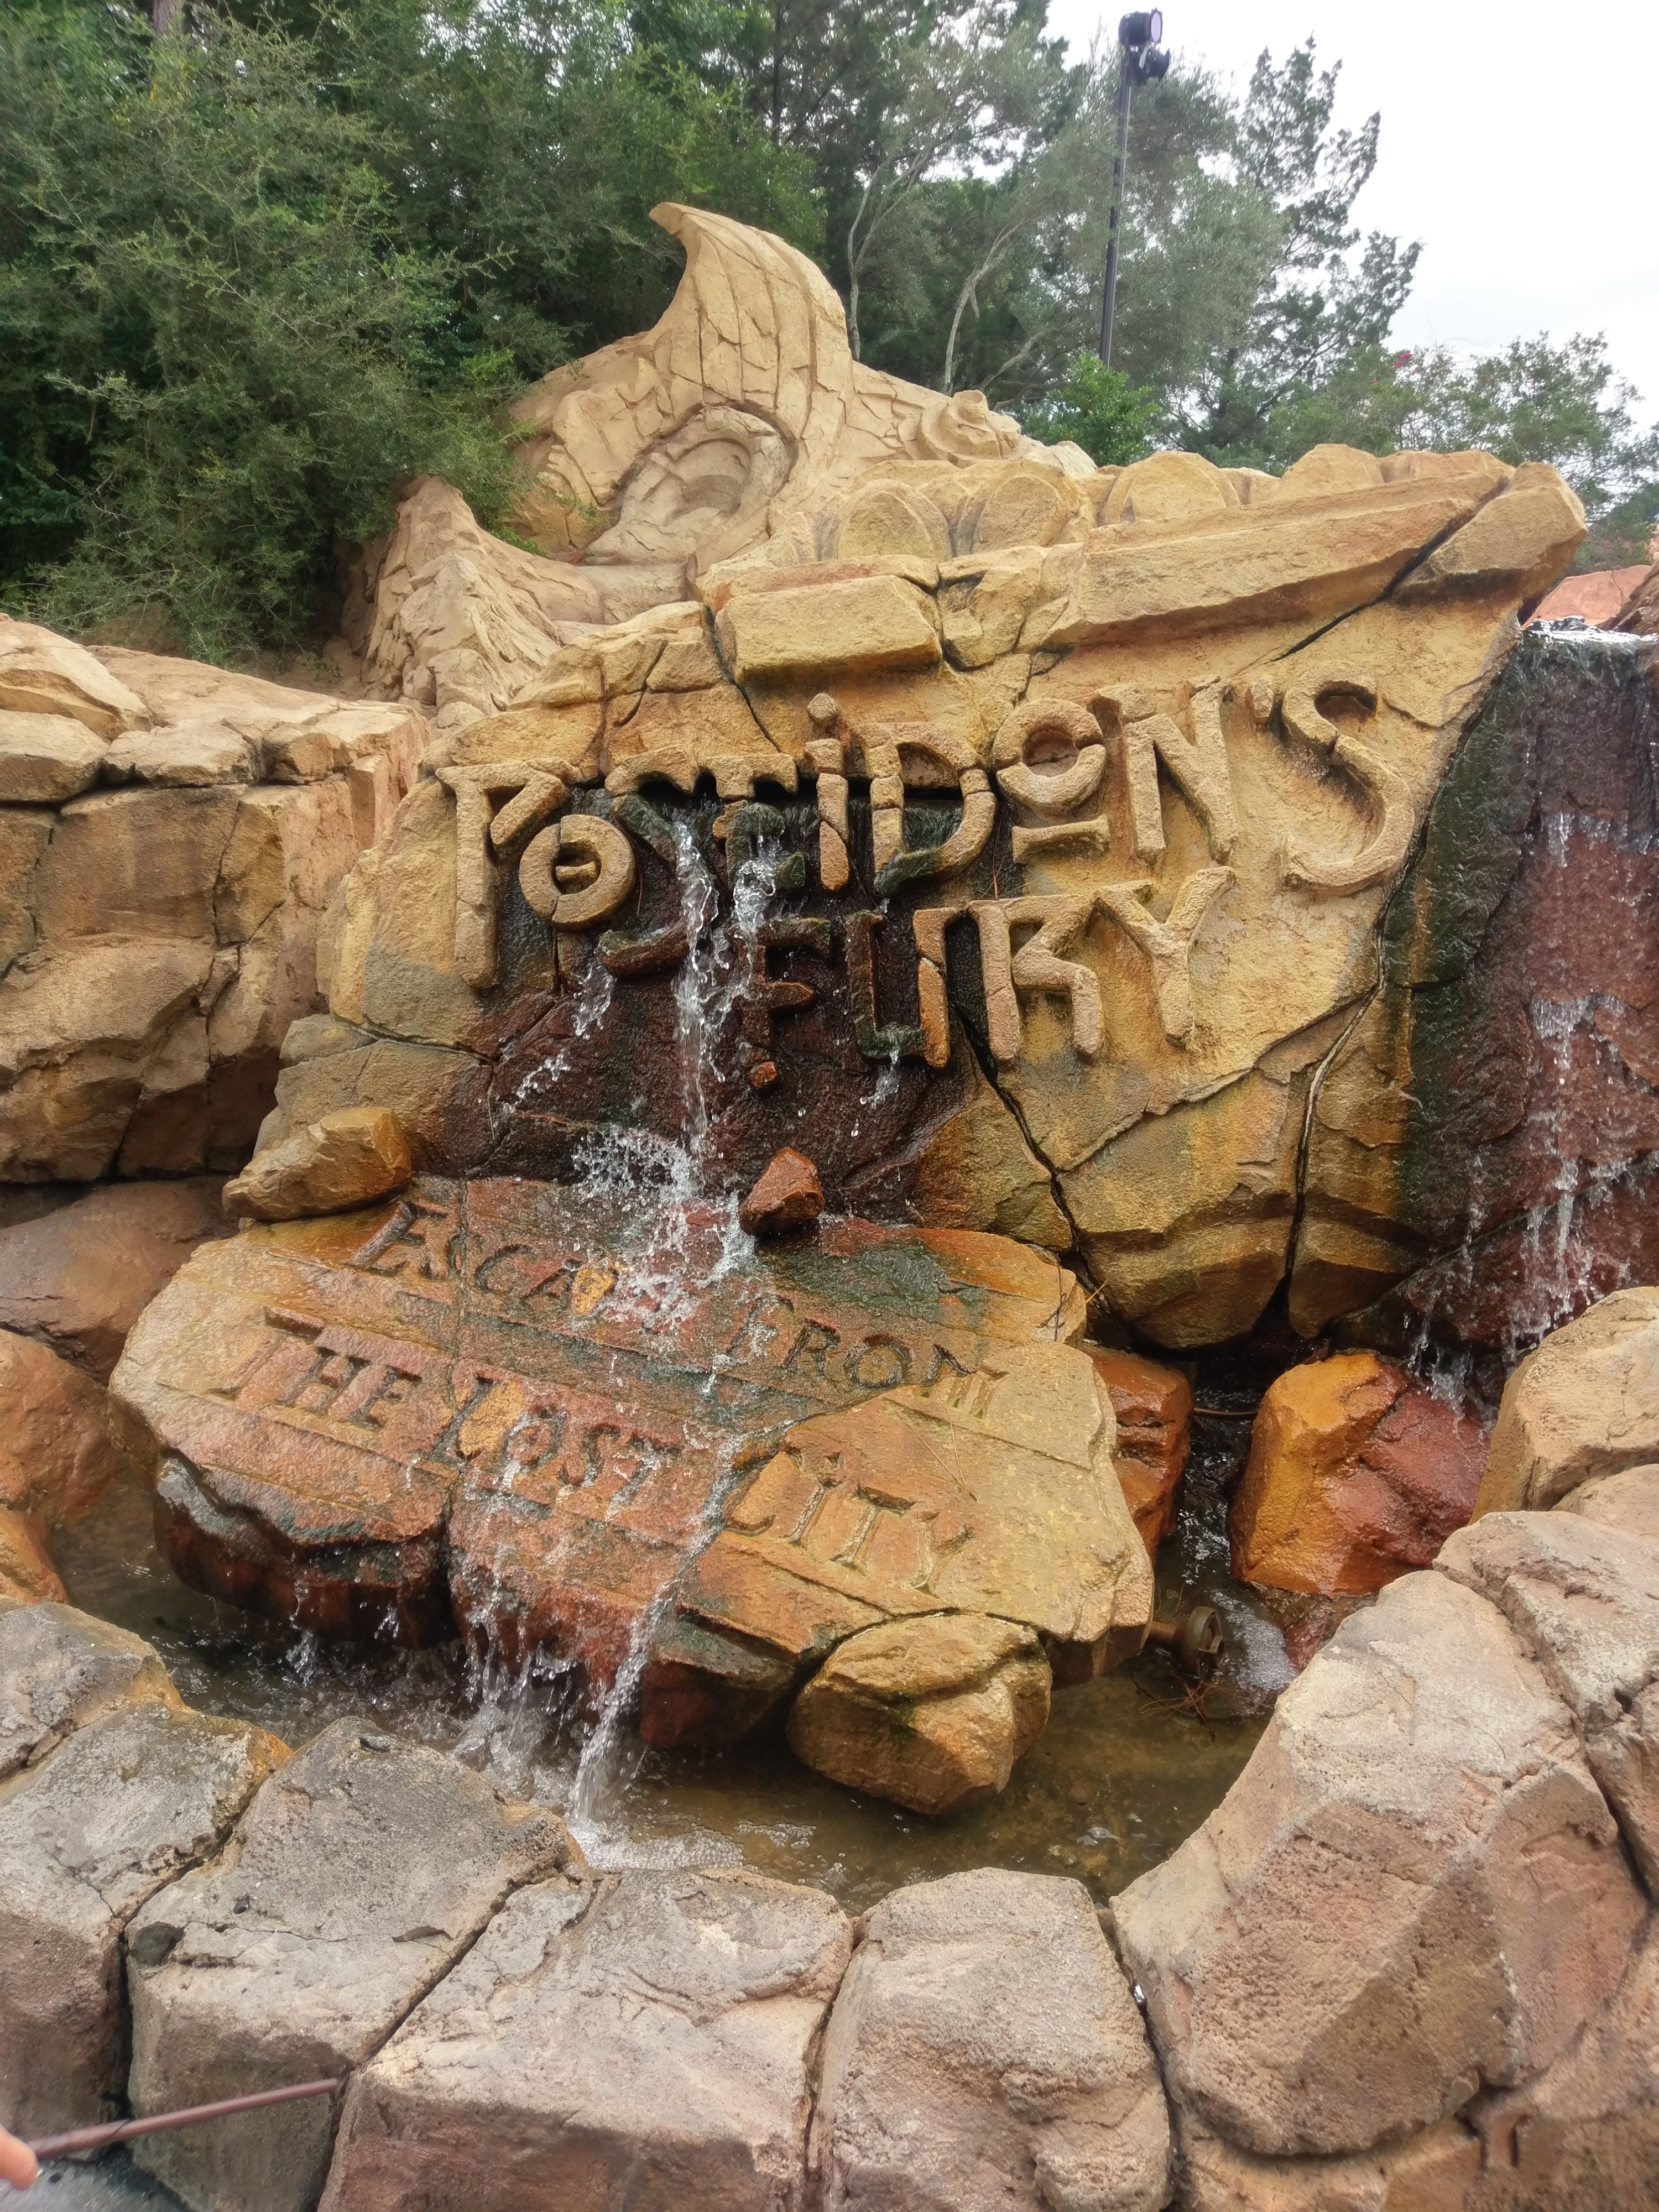 Taking an autistic child to Poseidon's Fury at Universal Island of Adventures